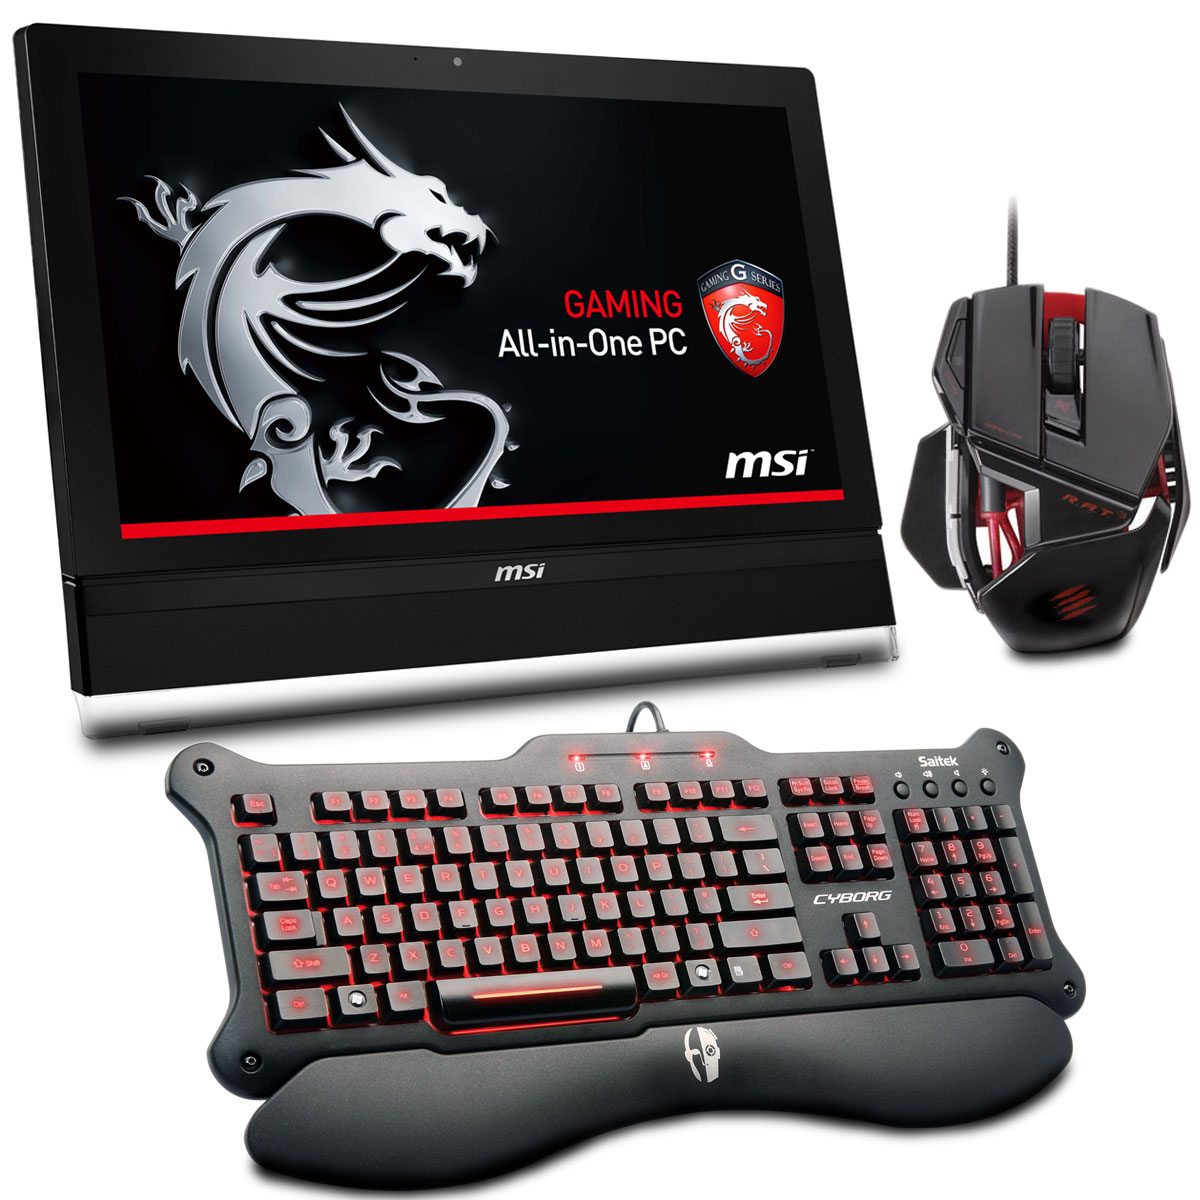 Msi Ag2712 005tw Gaming All In One Madcatz Cyborg R A T